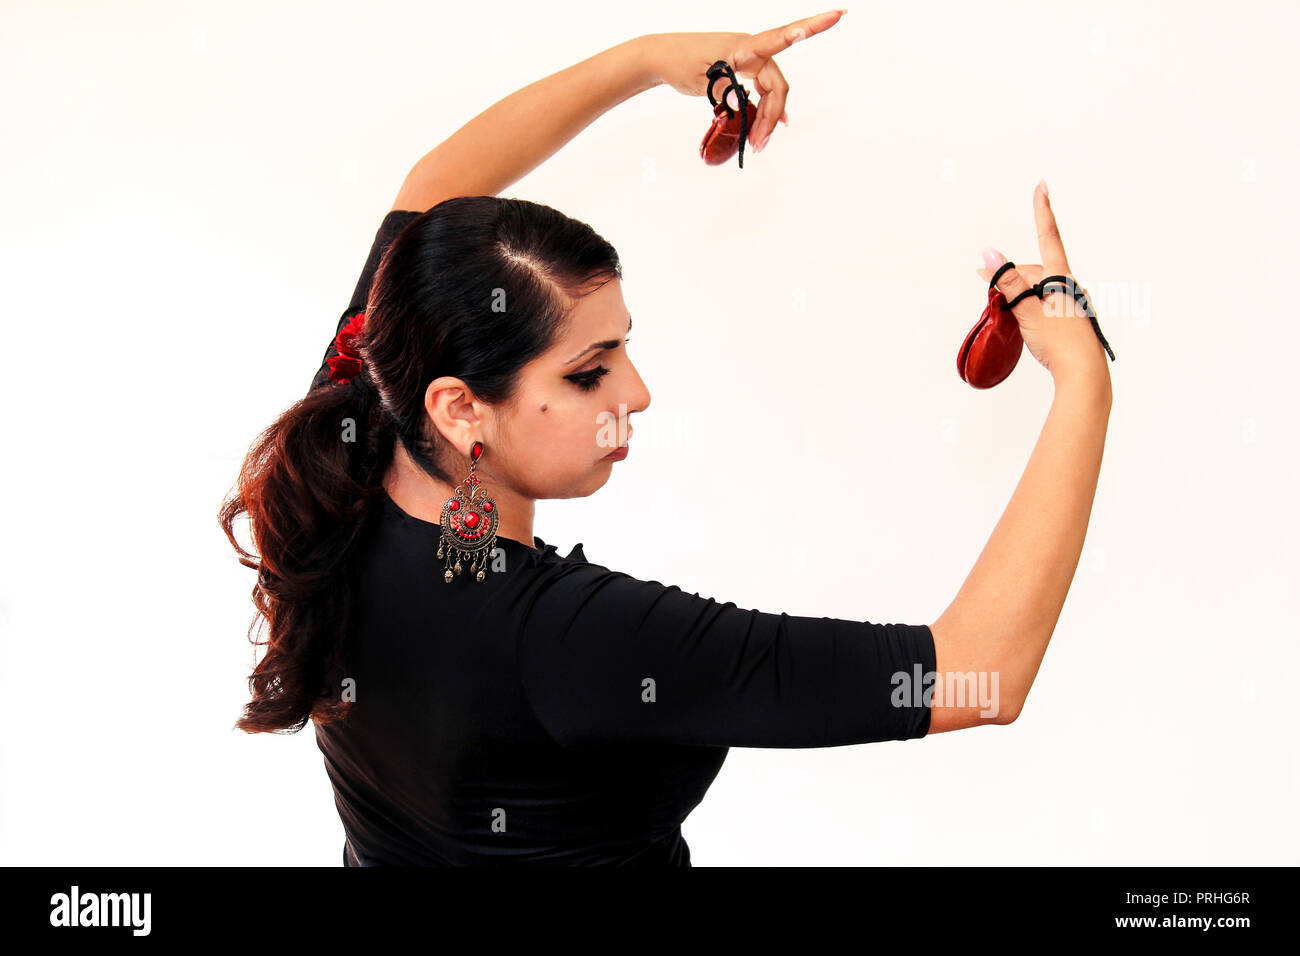 Young Spanish gipsy woman dancing flamenco with brown castanets in her hands. Flamenco dancer in beautiful national dress on a white background. Spain - Stock Image